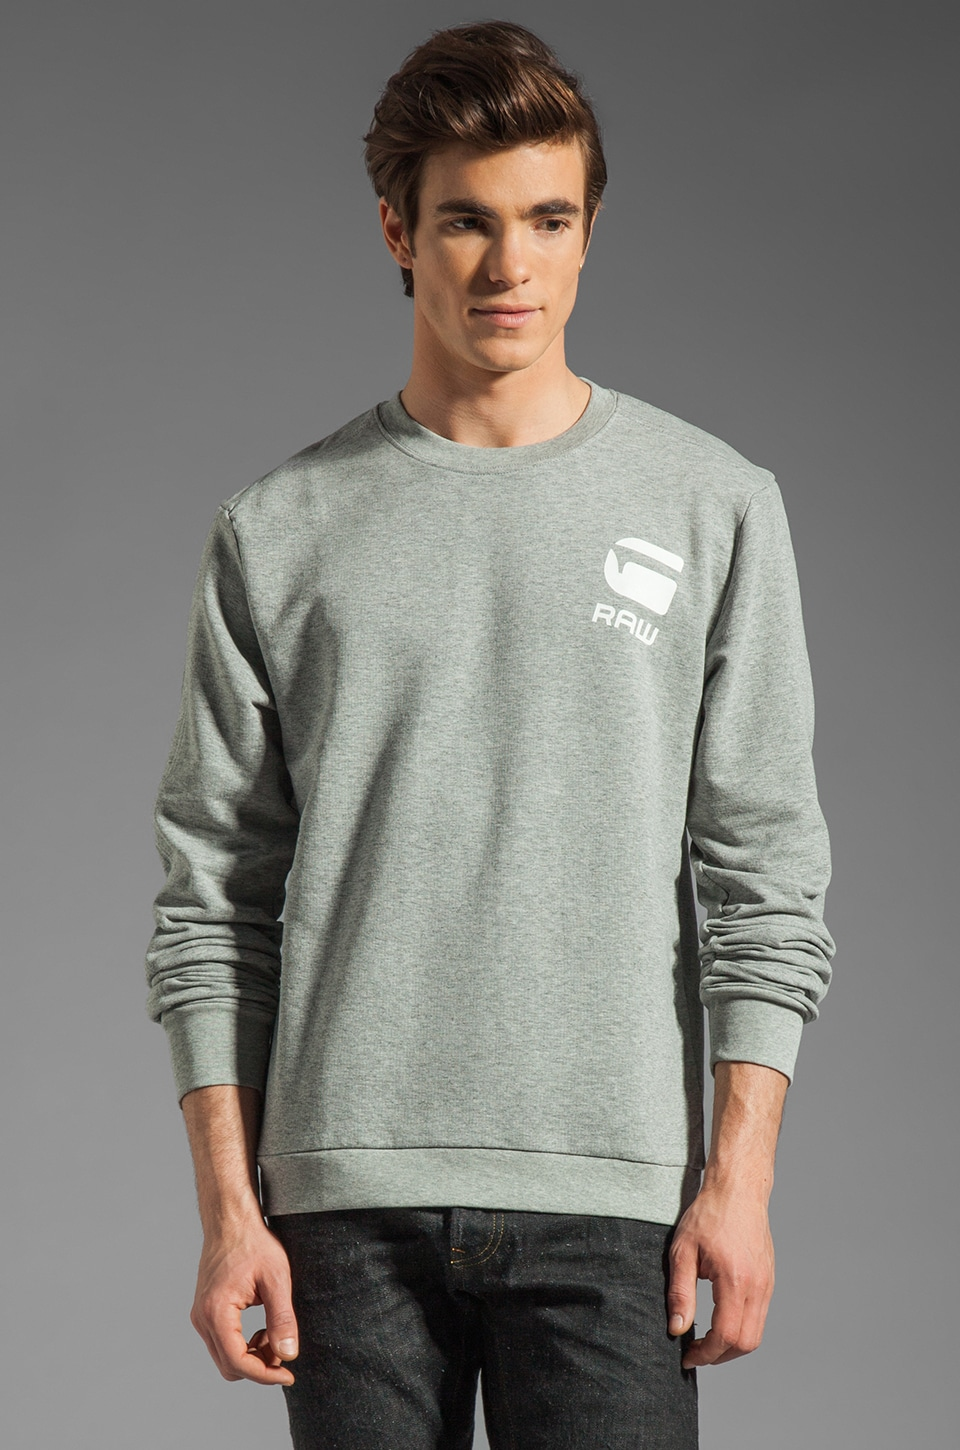 G-Star Carvell Logo Sweatshirt in Grey Heather